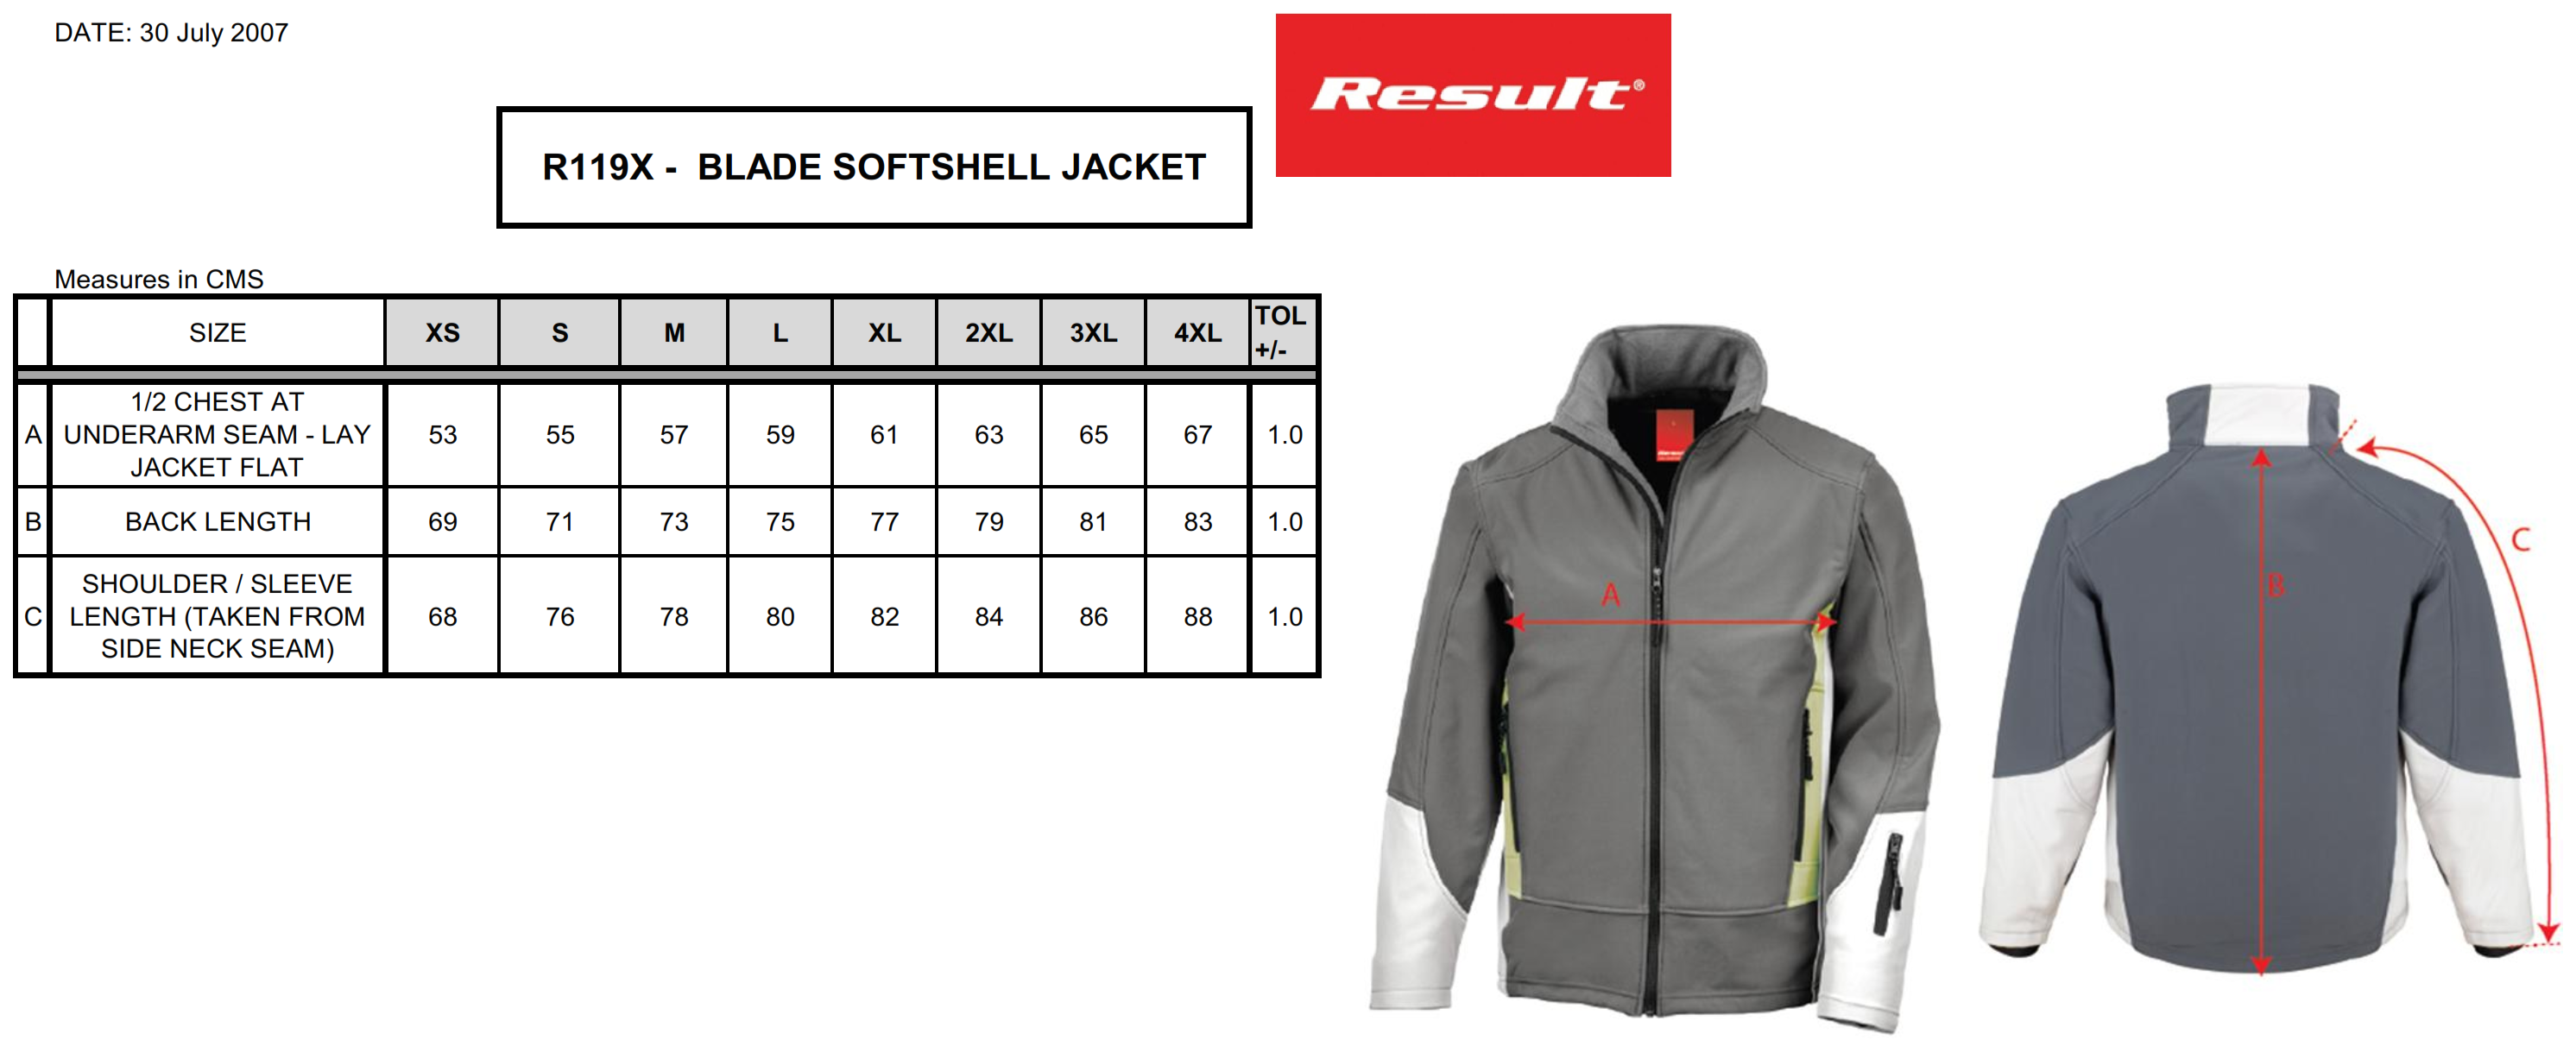 Result: Blade Soft Shell Jacket R119X